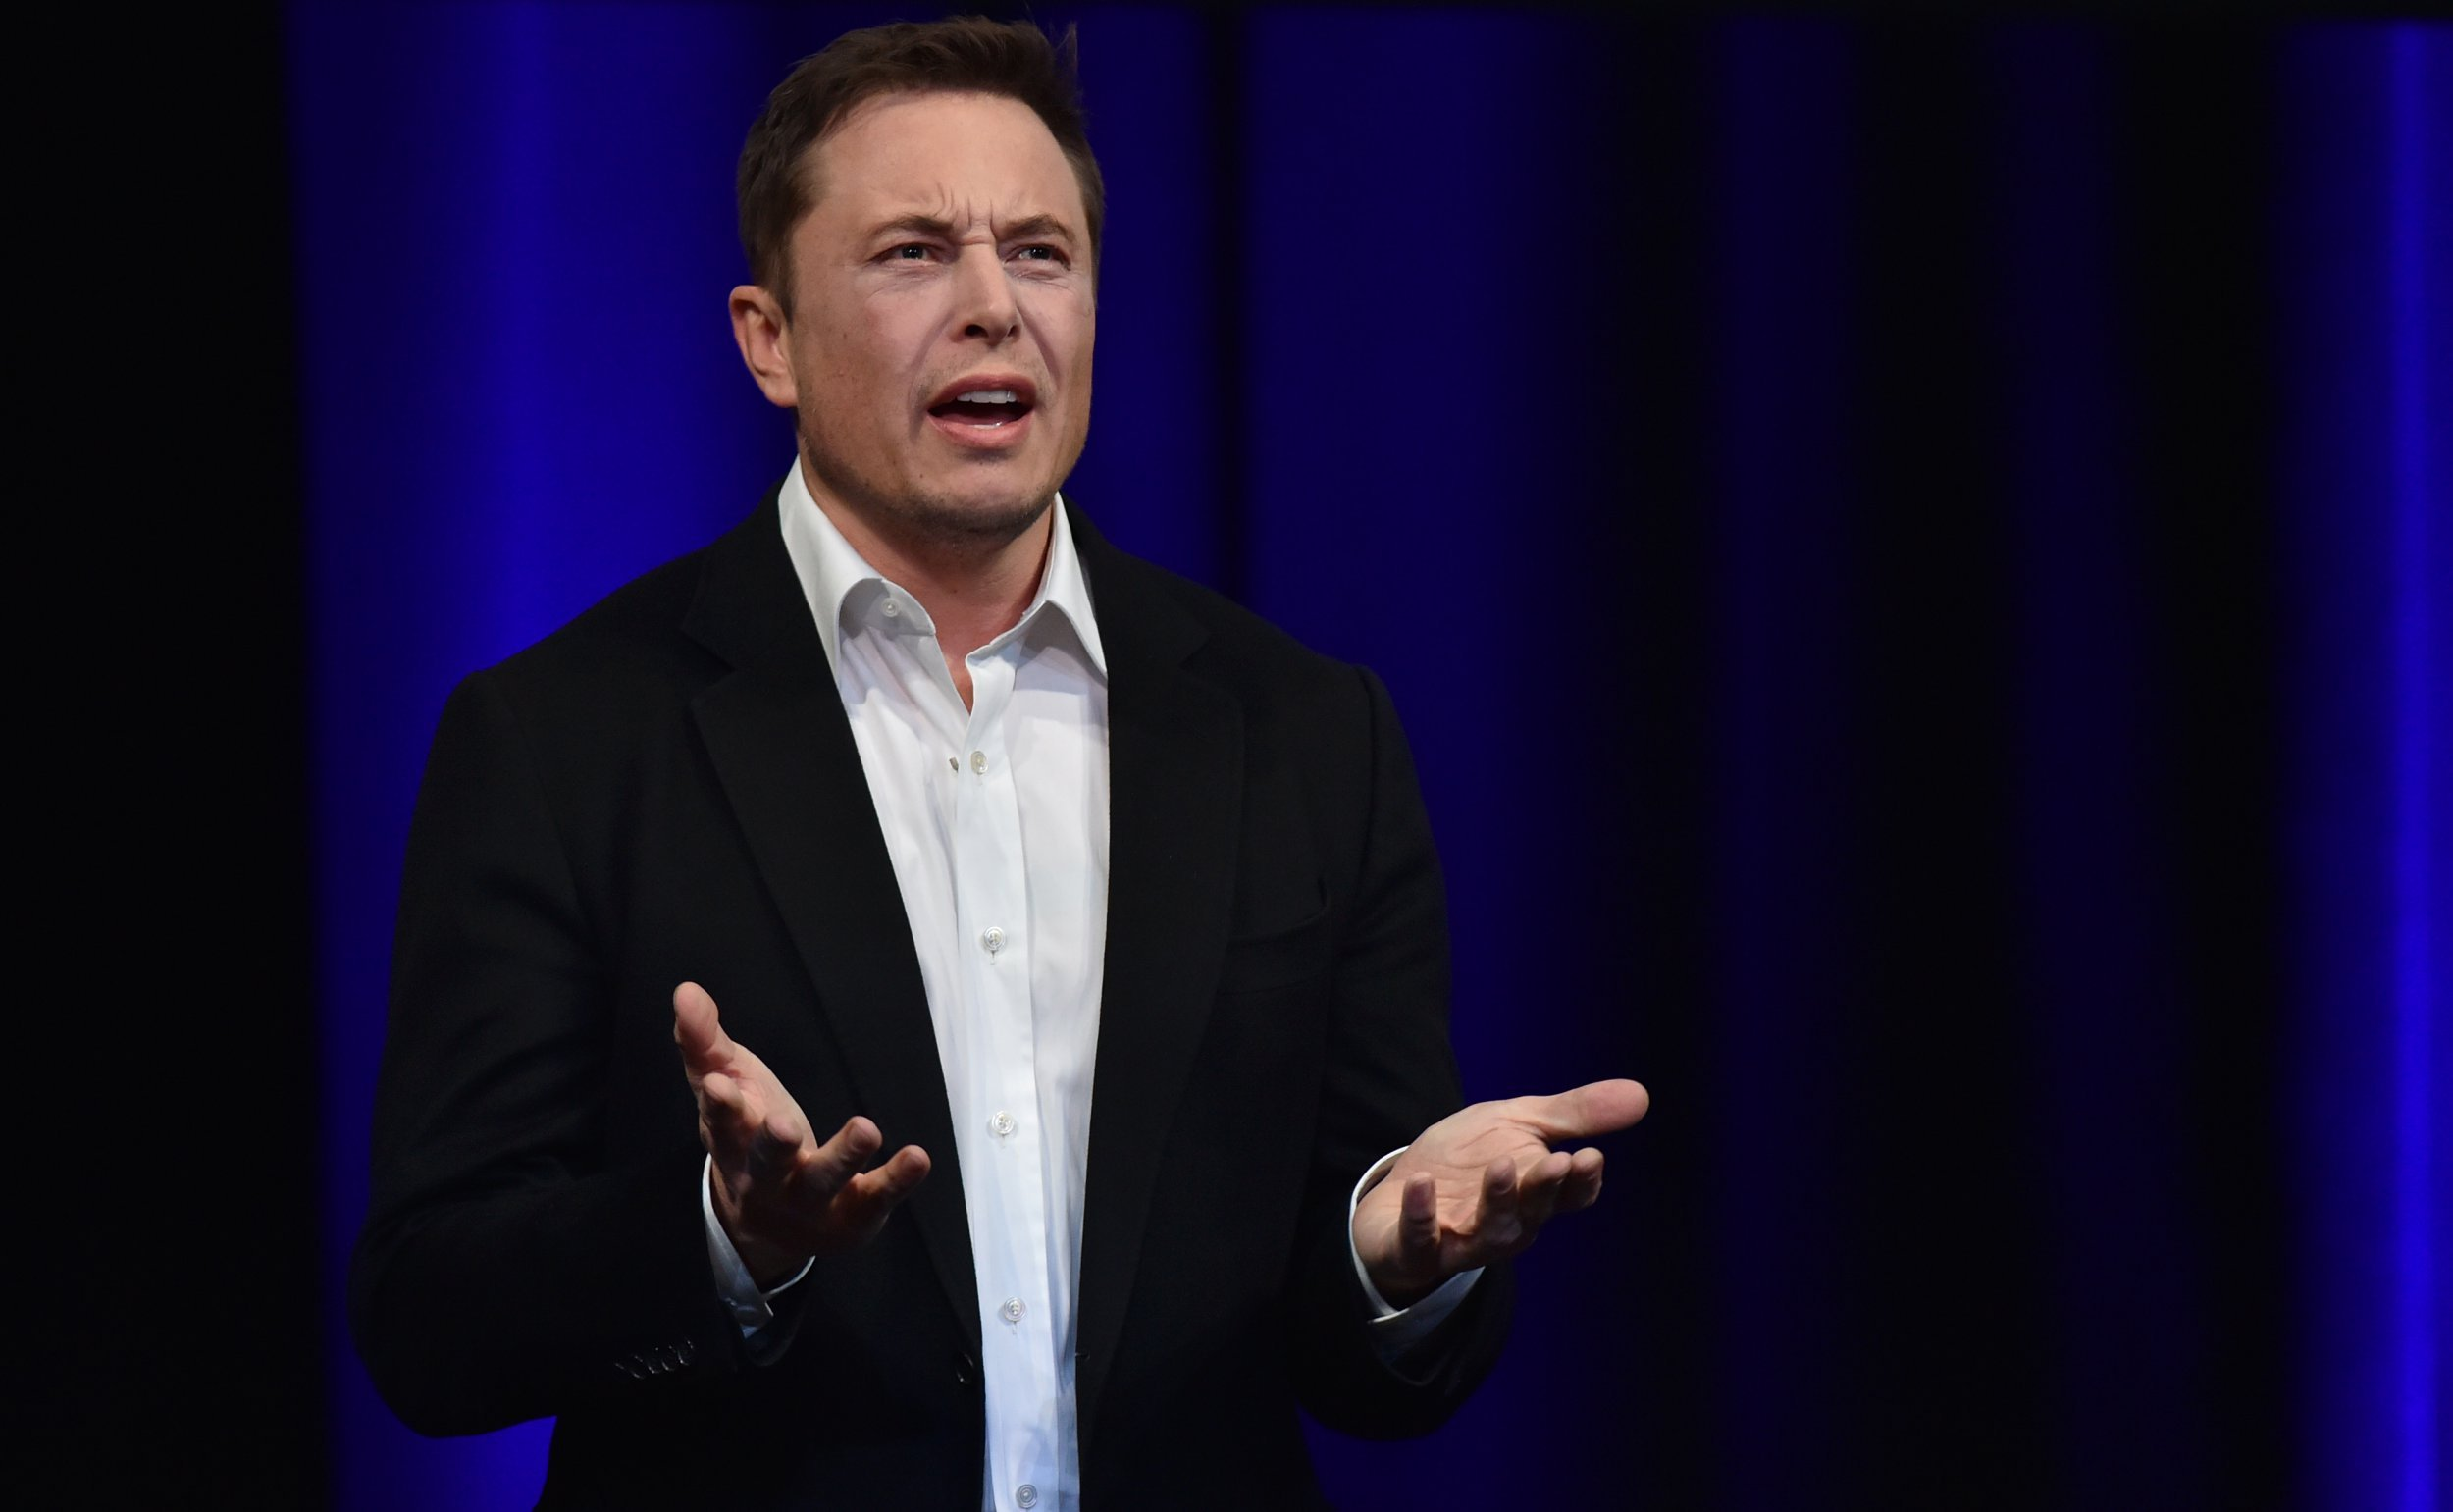 Elon Musk's OpenAI builds artificial intelligence so powerful it must be kept locked up for the good of humanity